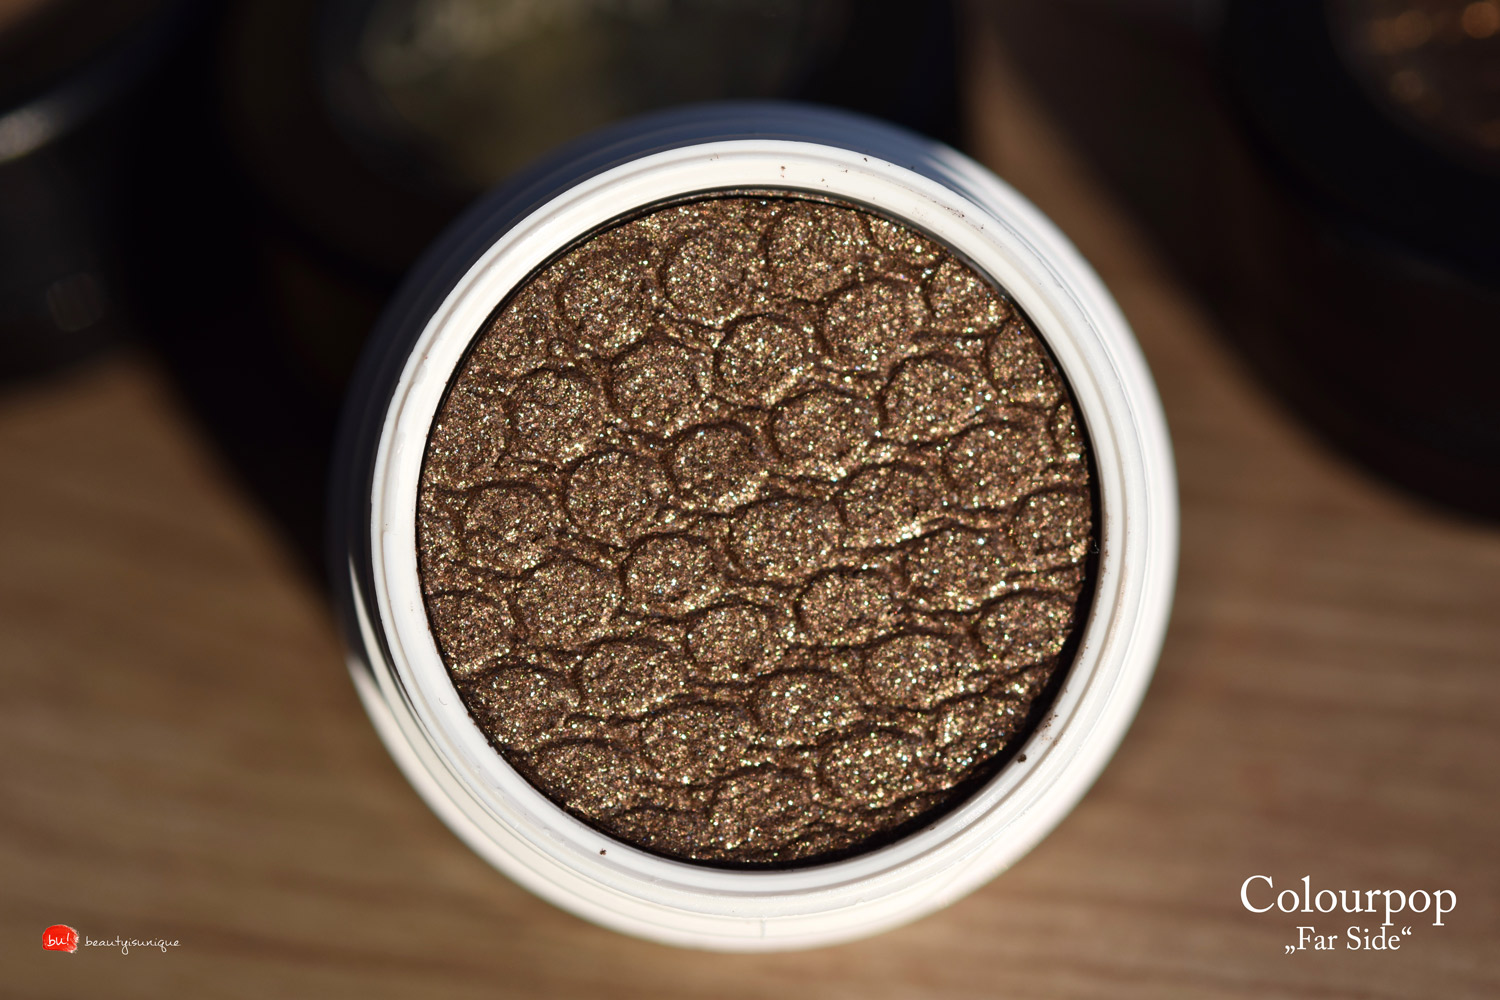 Colourpop-far-side-swatch